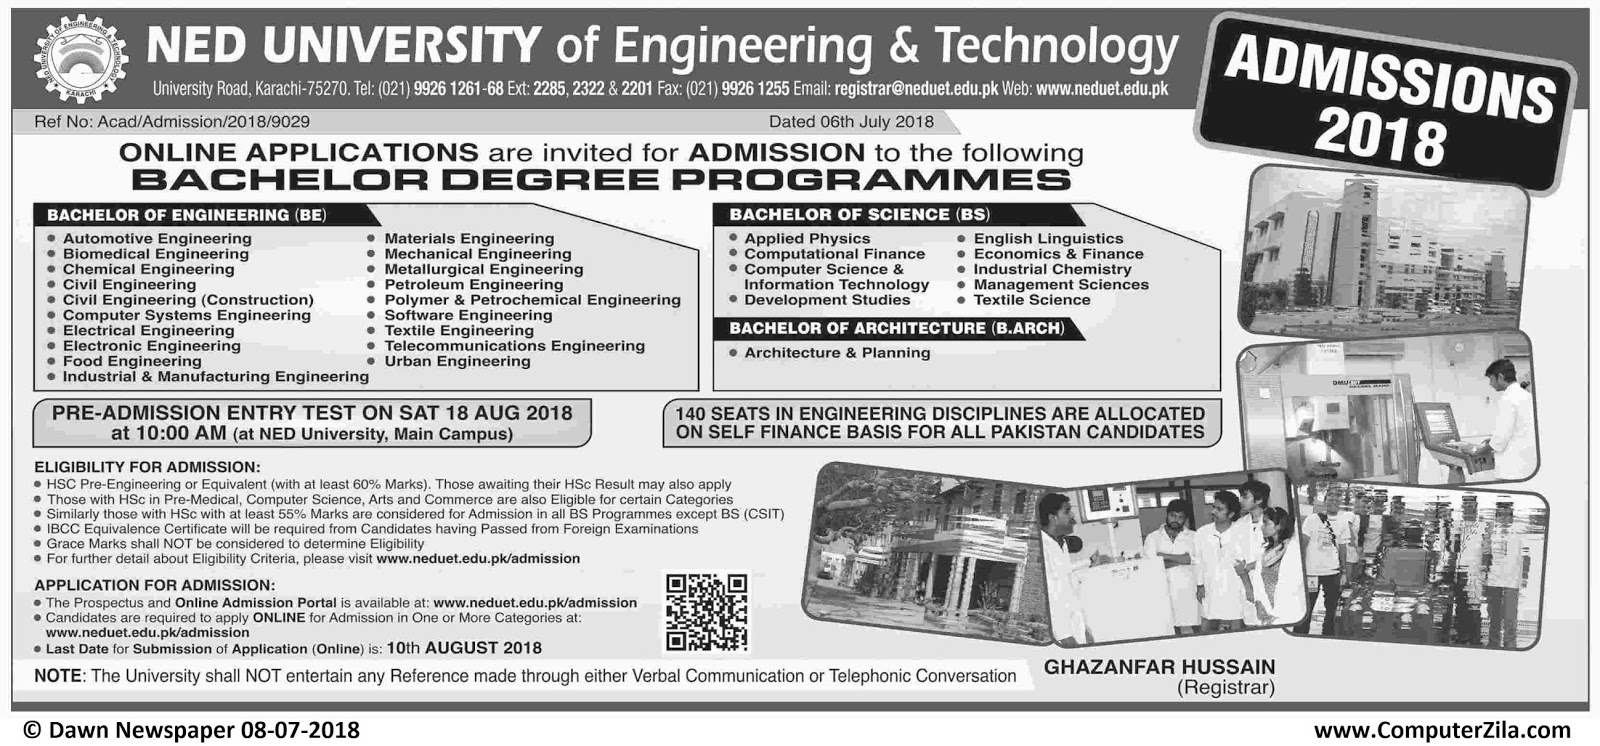 NED University of Engineering & Technology Admissions Fall 2018